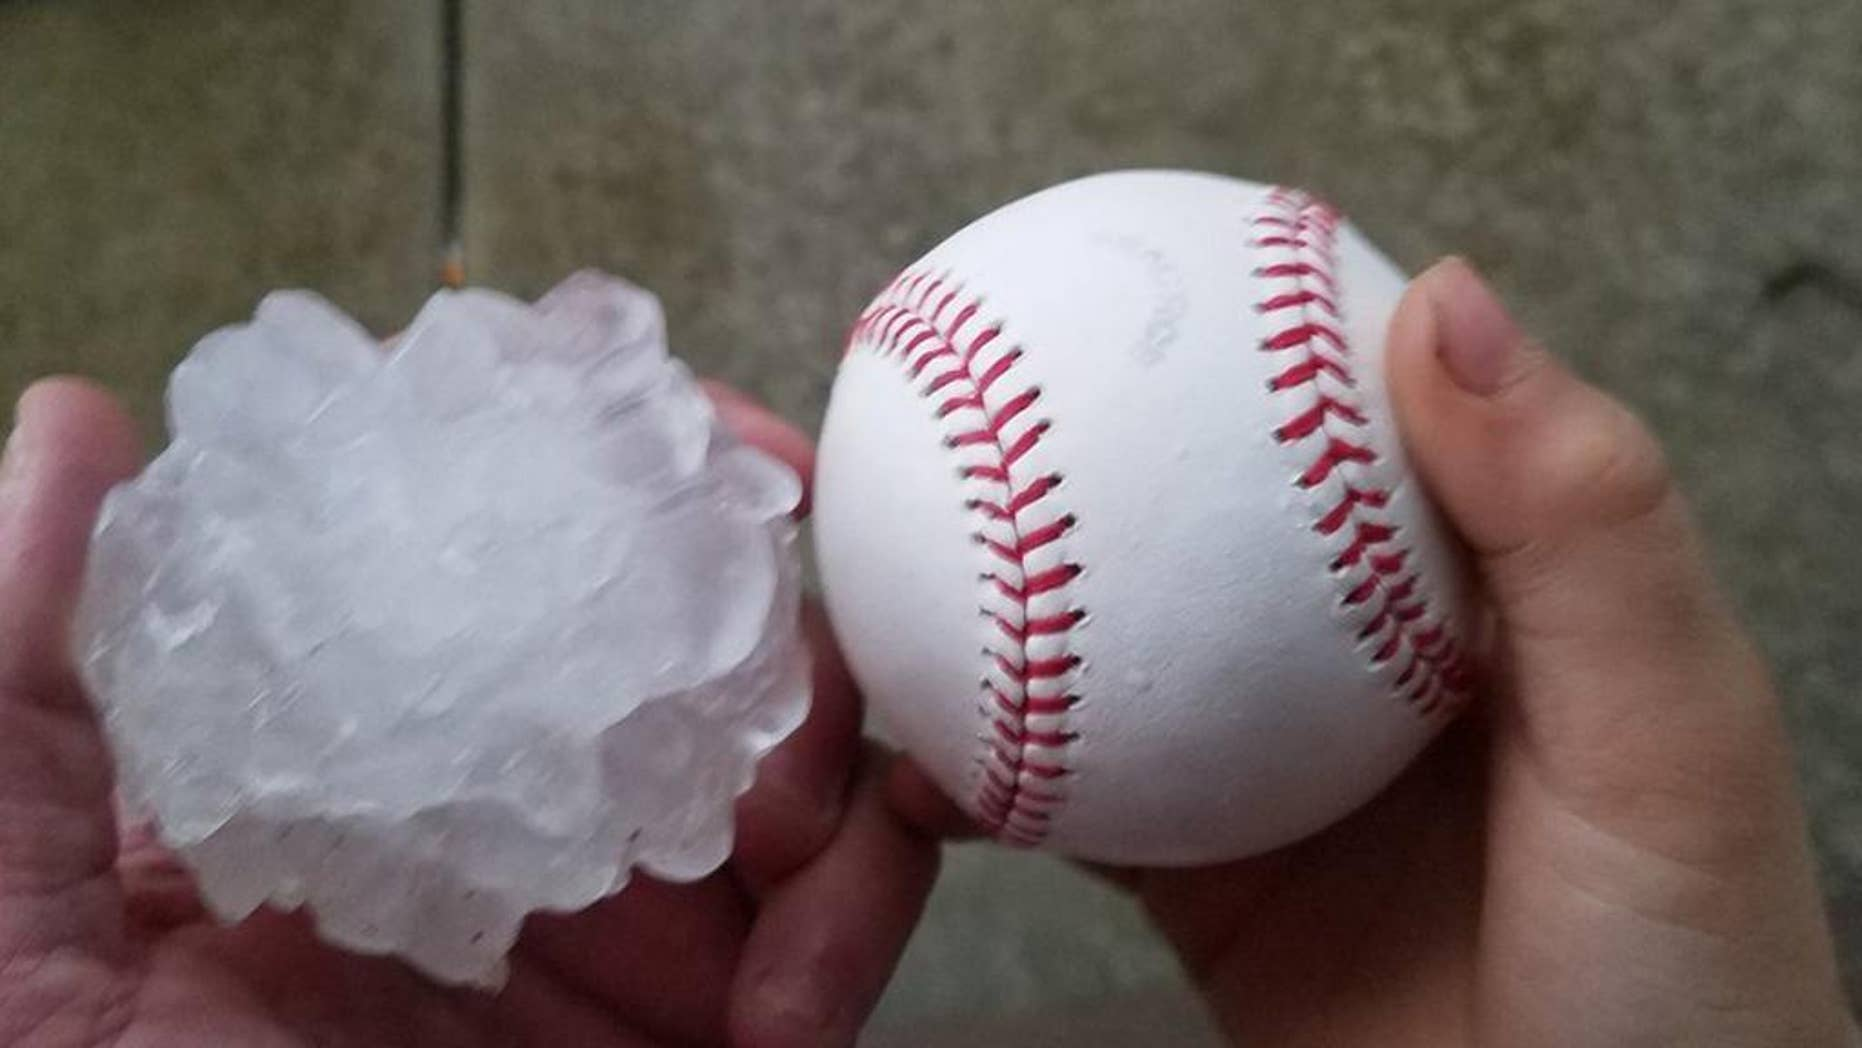 This photo provided by Tim Creedon shows his baseball and a hailstone that fell in the backyard of Creedon's home in Ottawa, Ill., Tuesday, Feb. 28, 2017. Illinois Gov. Bruce Rauner has activated the state's emergency operations center as local officials reported damage from tornados spawned by a late-winter storm system. (Tim Creedon via AP)